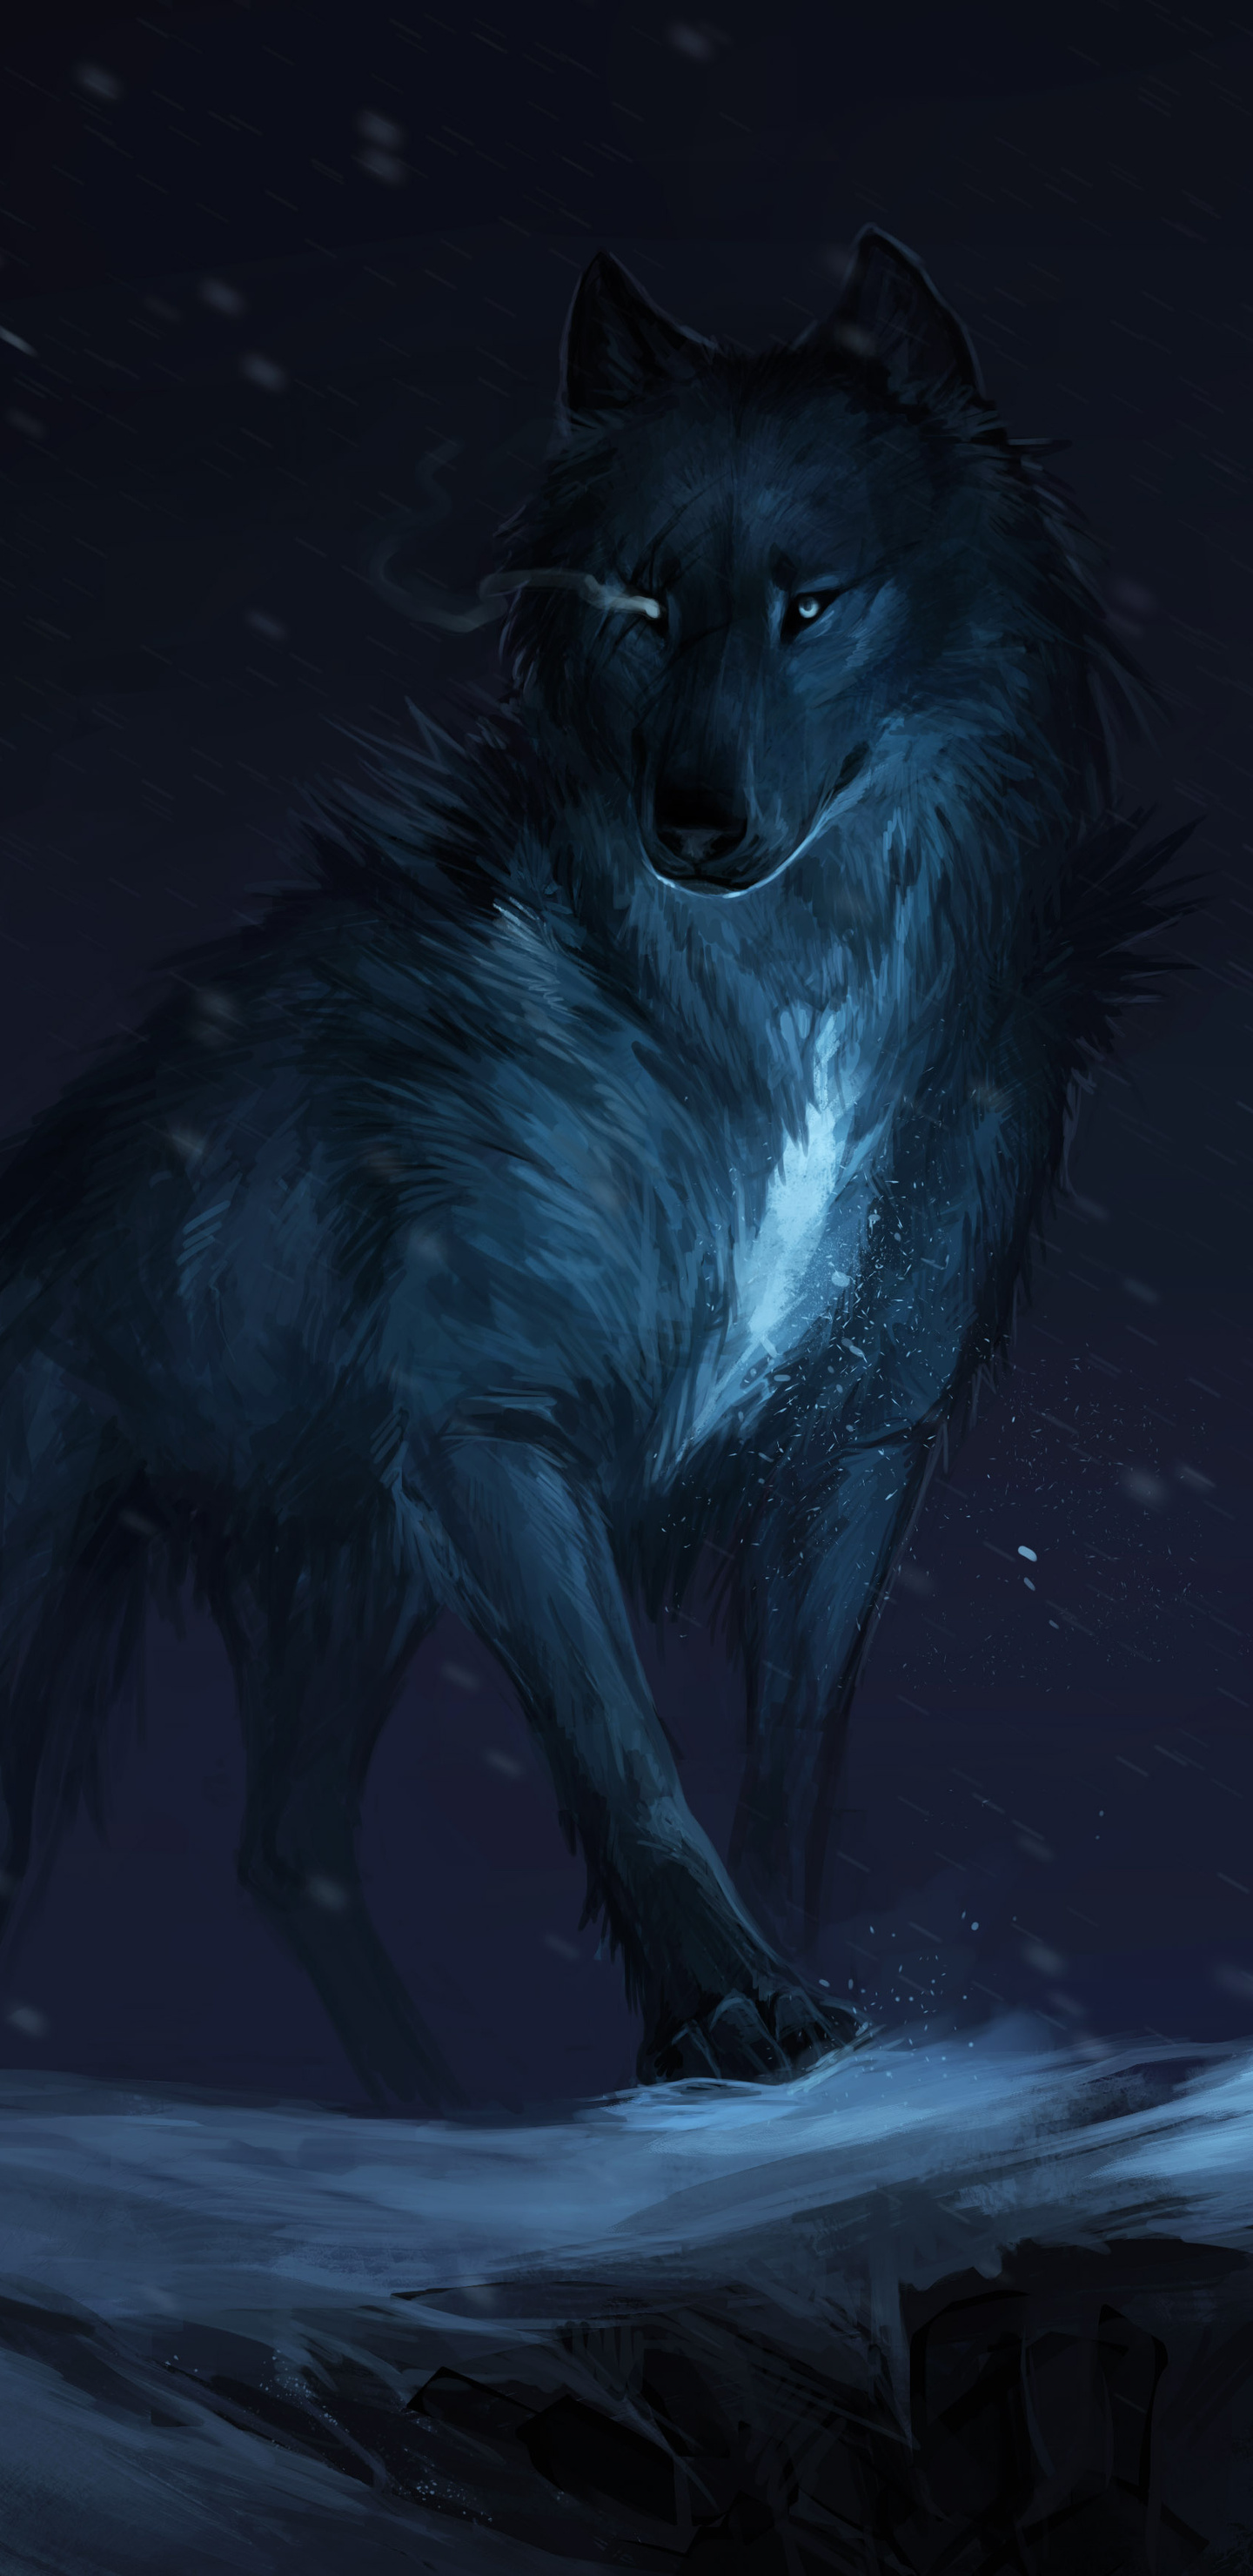 1440x2960 wolf drawing samsung galaxy note 9 8 s9 s8 s8 - Anime wolf wallpaper ...